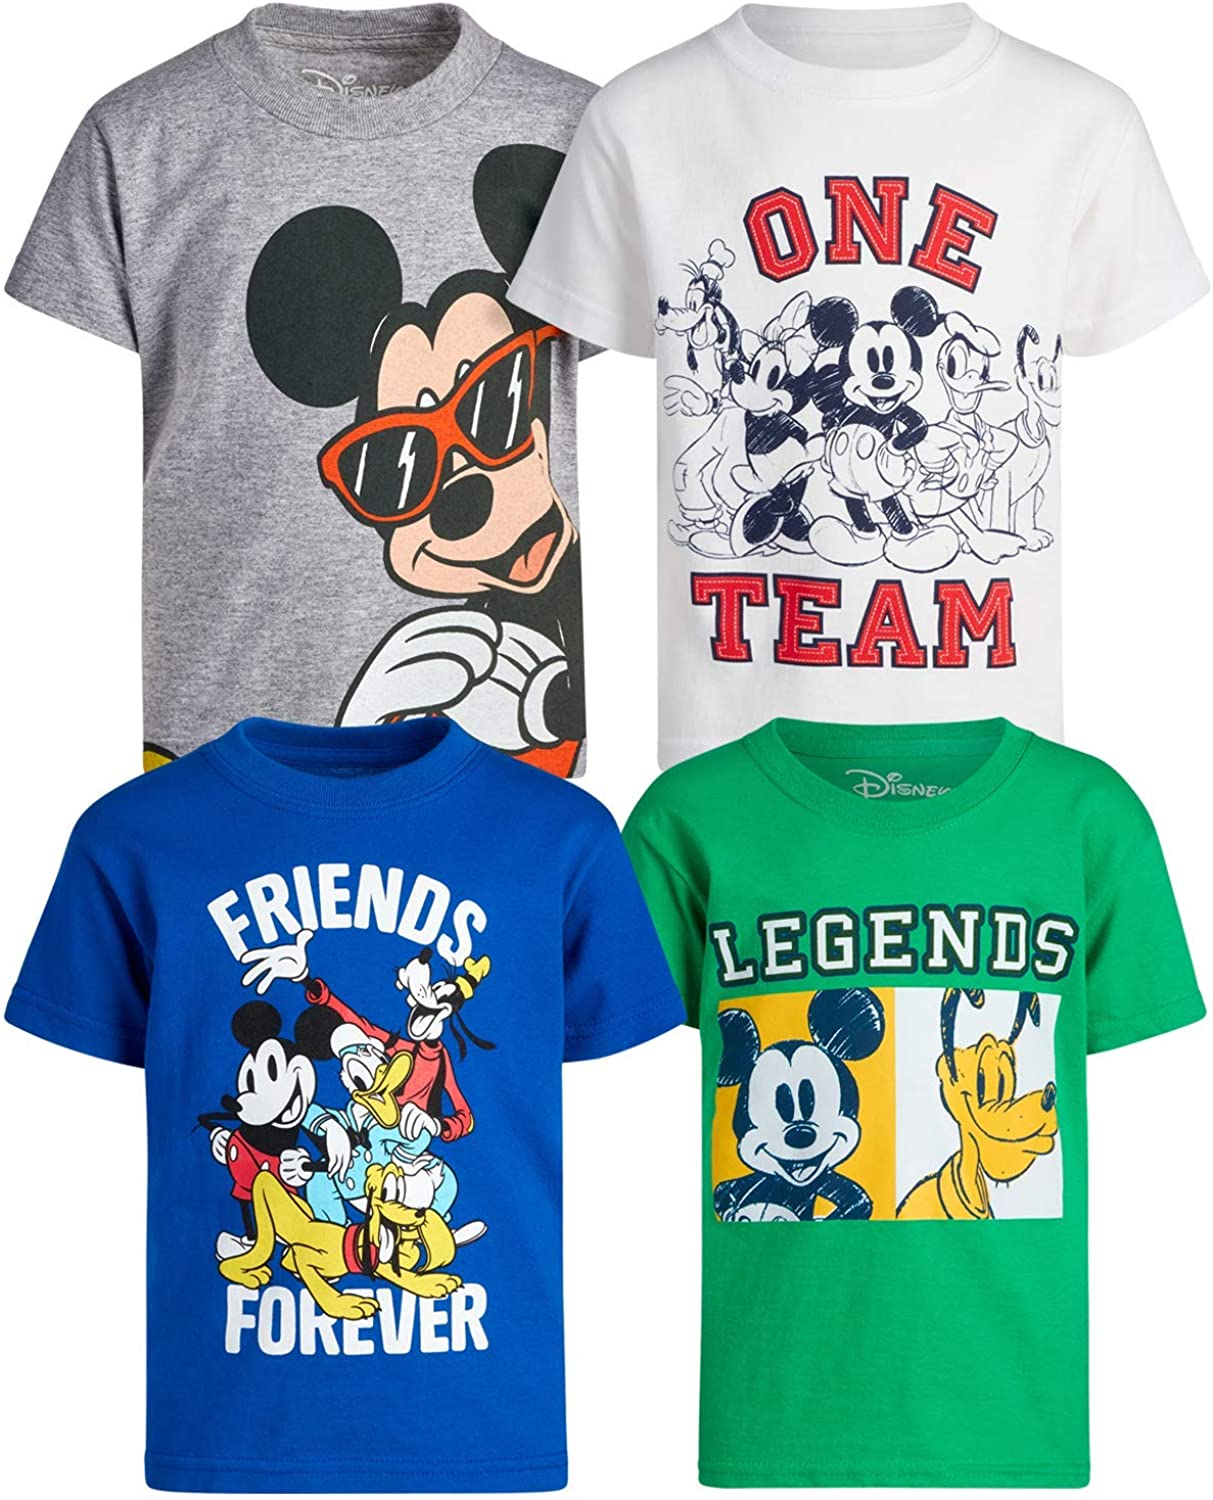 Disney Boys' 4 Pack T-Shirt - Mickey Mouse & Friends Short Sleeve Graphic Tee (Toddler/Little Boy)